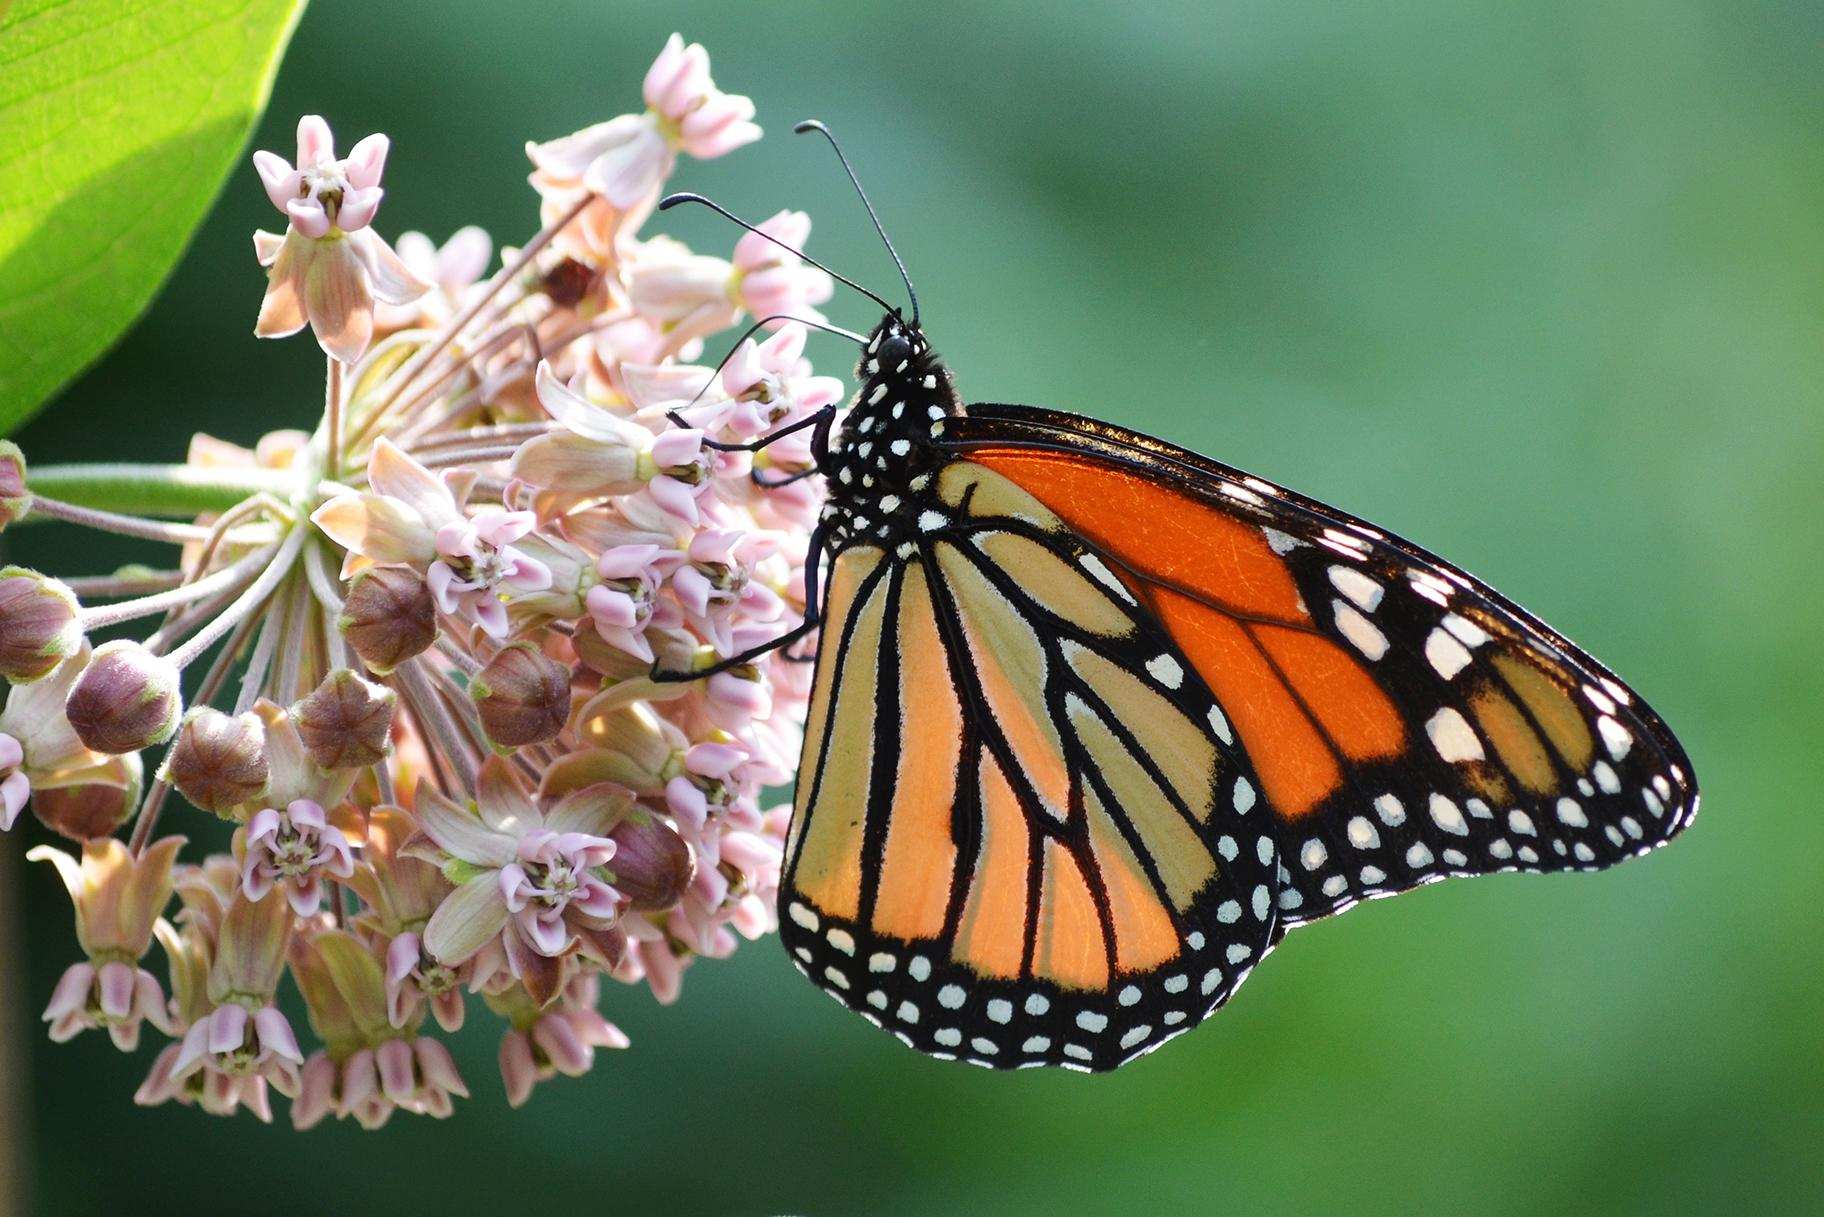 A monarch butterfly on a common milkweed plant (Mark Rogovin / The Field Museum)